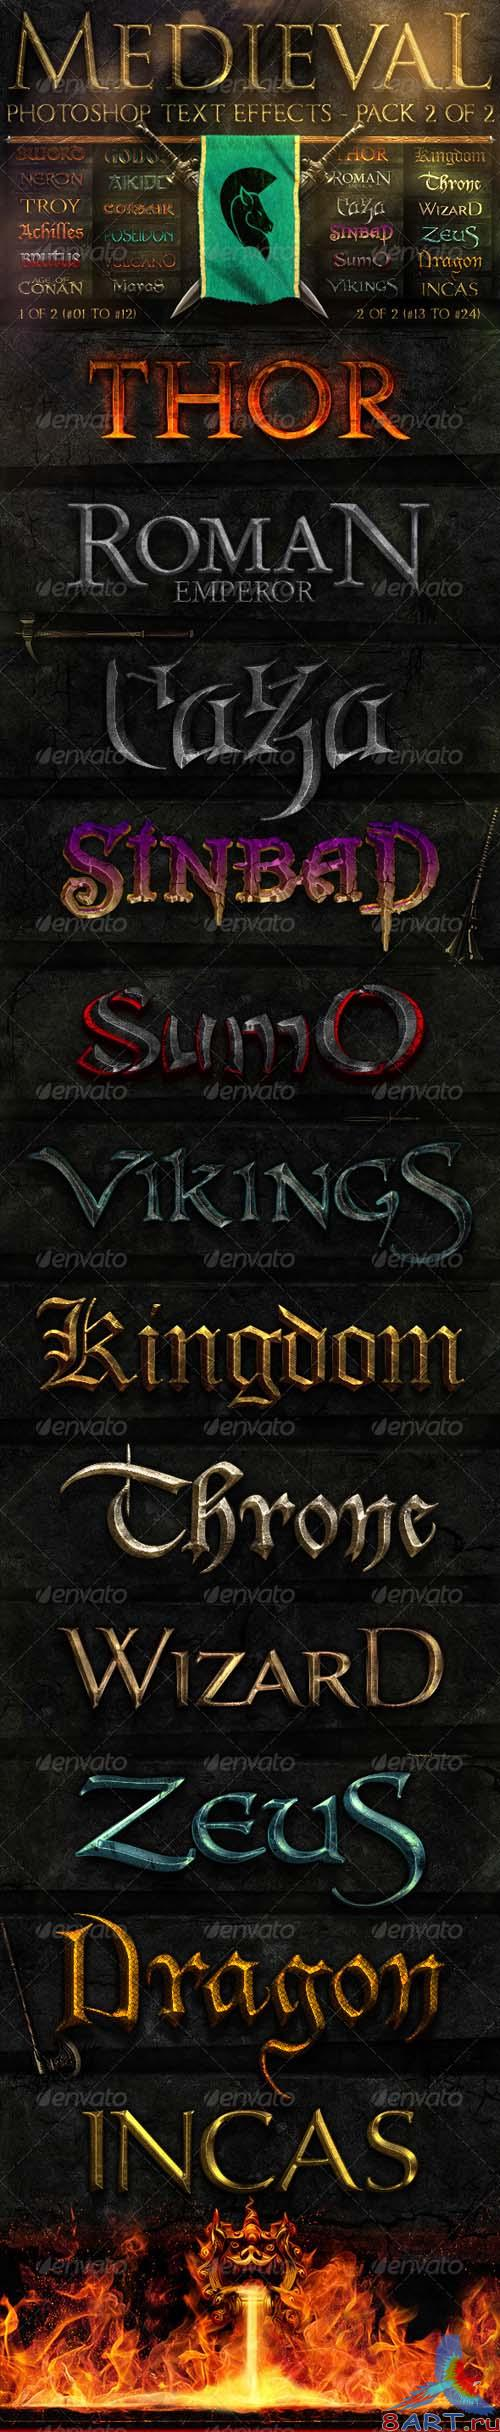 GraphicRiver Medieval Photoshop Text Effects 2 of 2 - REUPLOAD